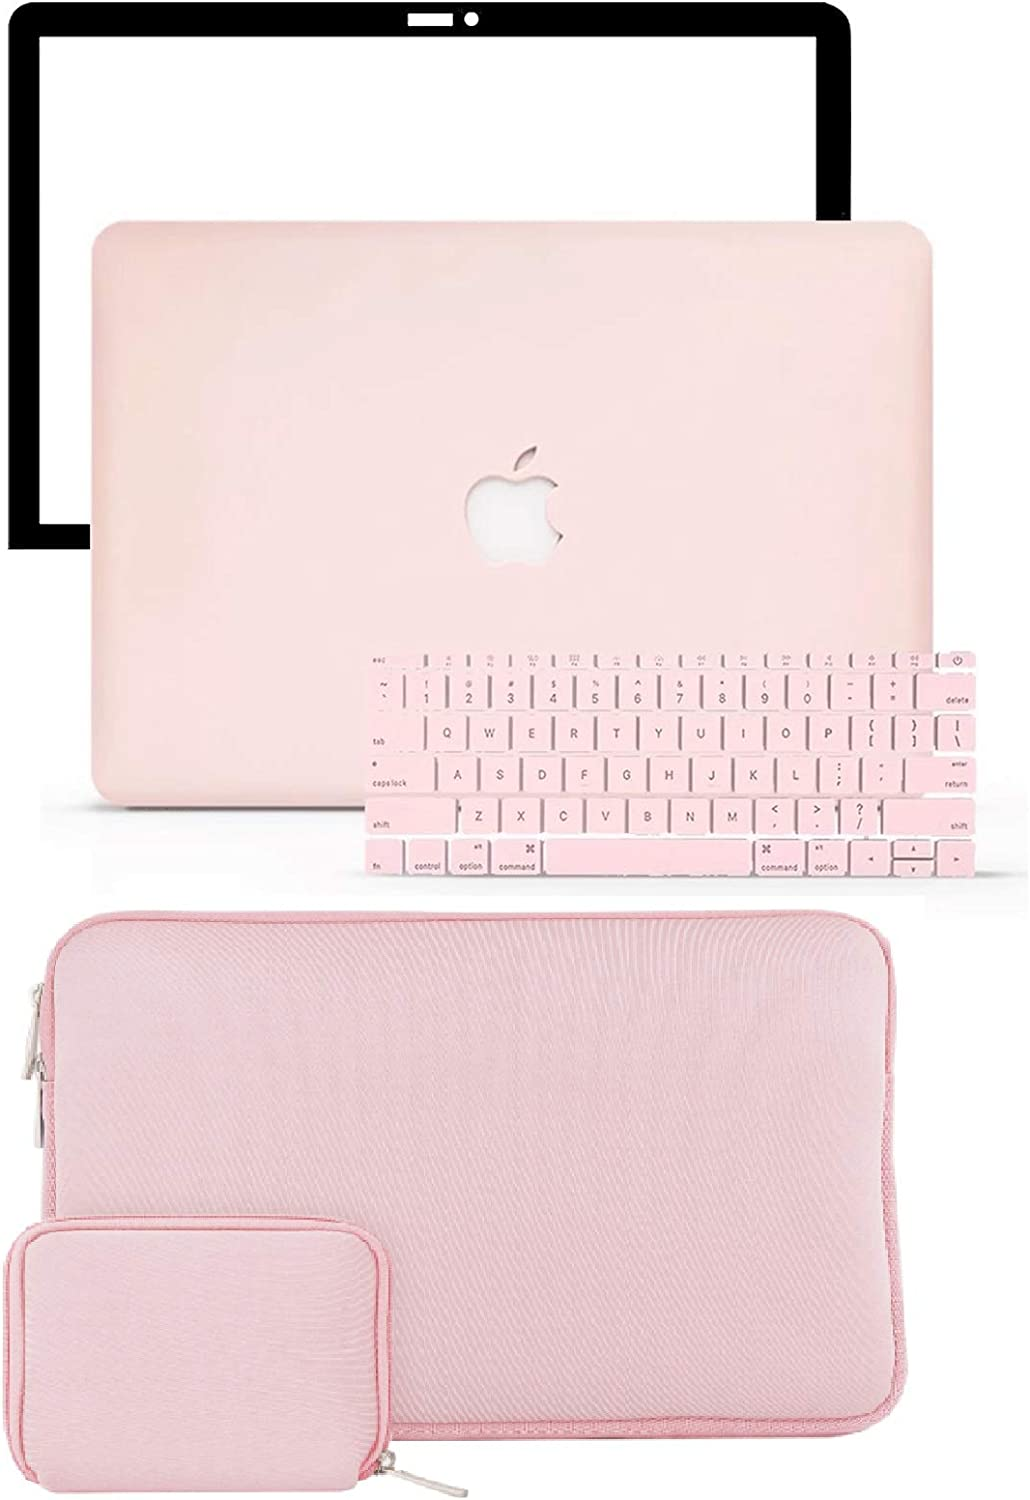 "LuvCase 4 in 1 Laptop Case for MacBook Pro 13"" (2016-2020) w/wo Touch Bar A2159/A1989/A1706/A1708 Hard Shell Cover, Slim Sleeve, Pouch, Keyboard Cover & Screen Protector (Rose Quartz)"